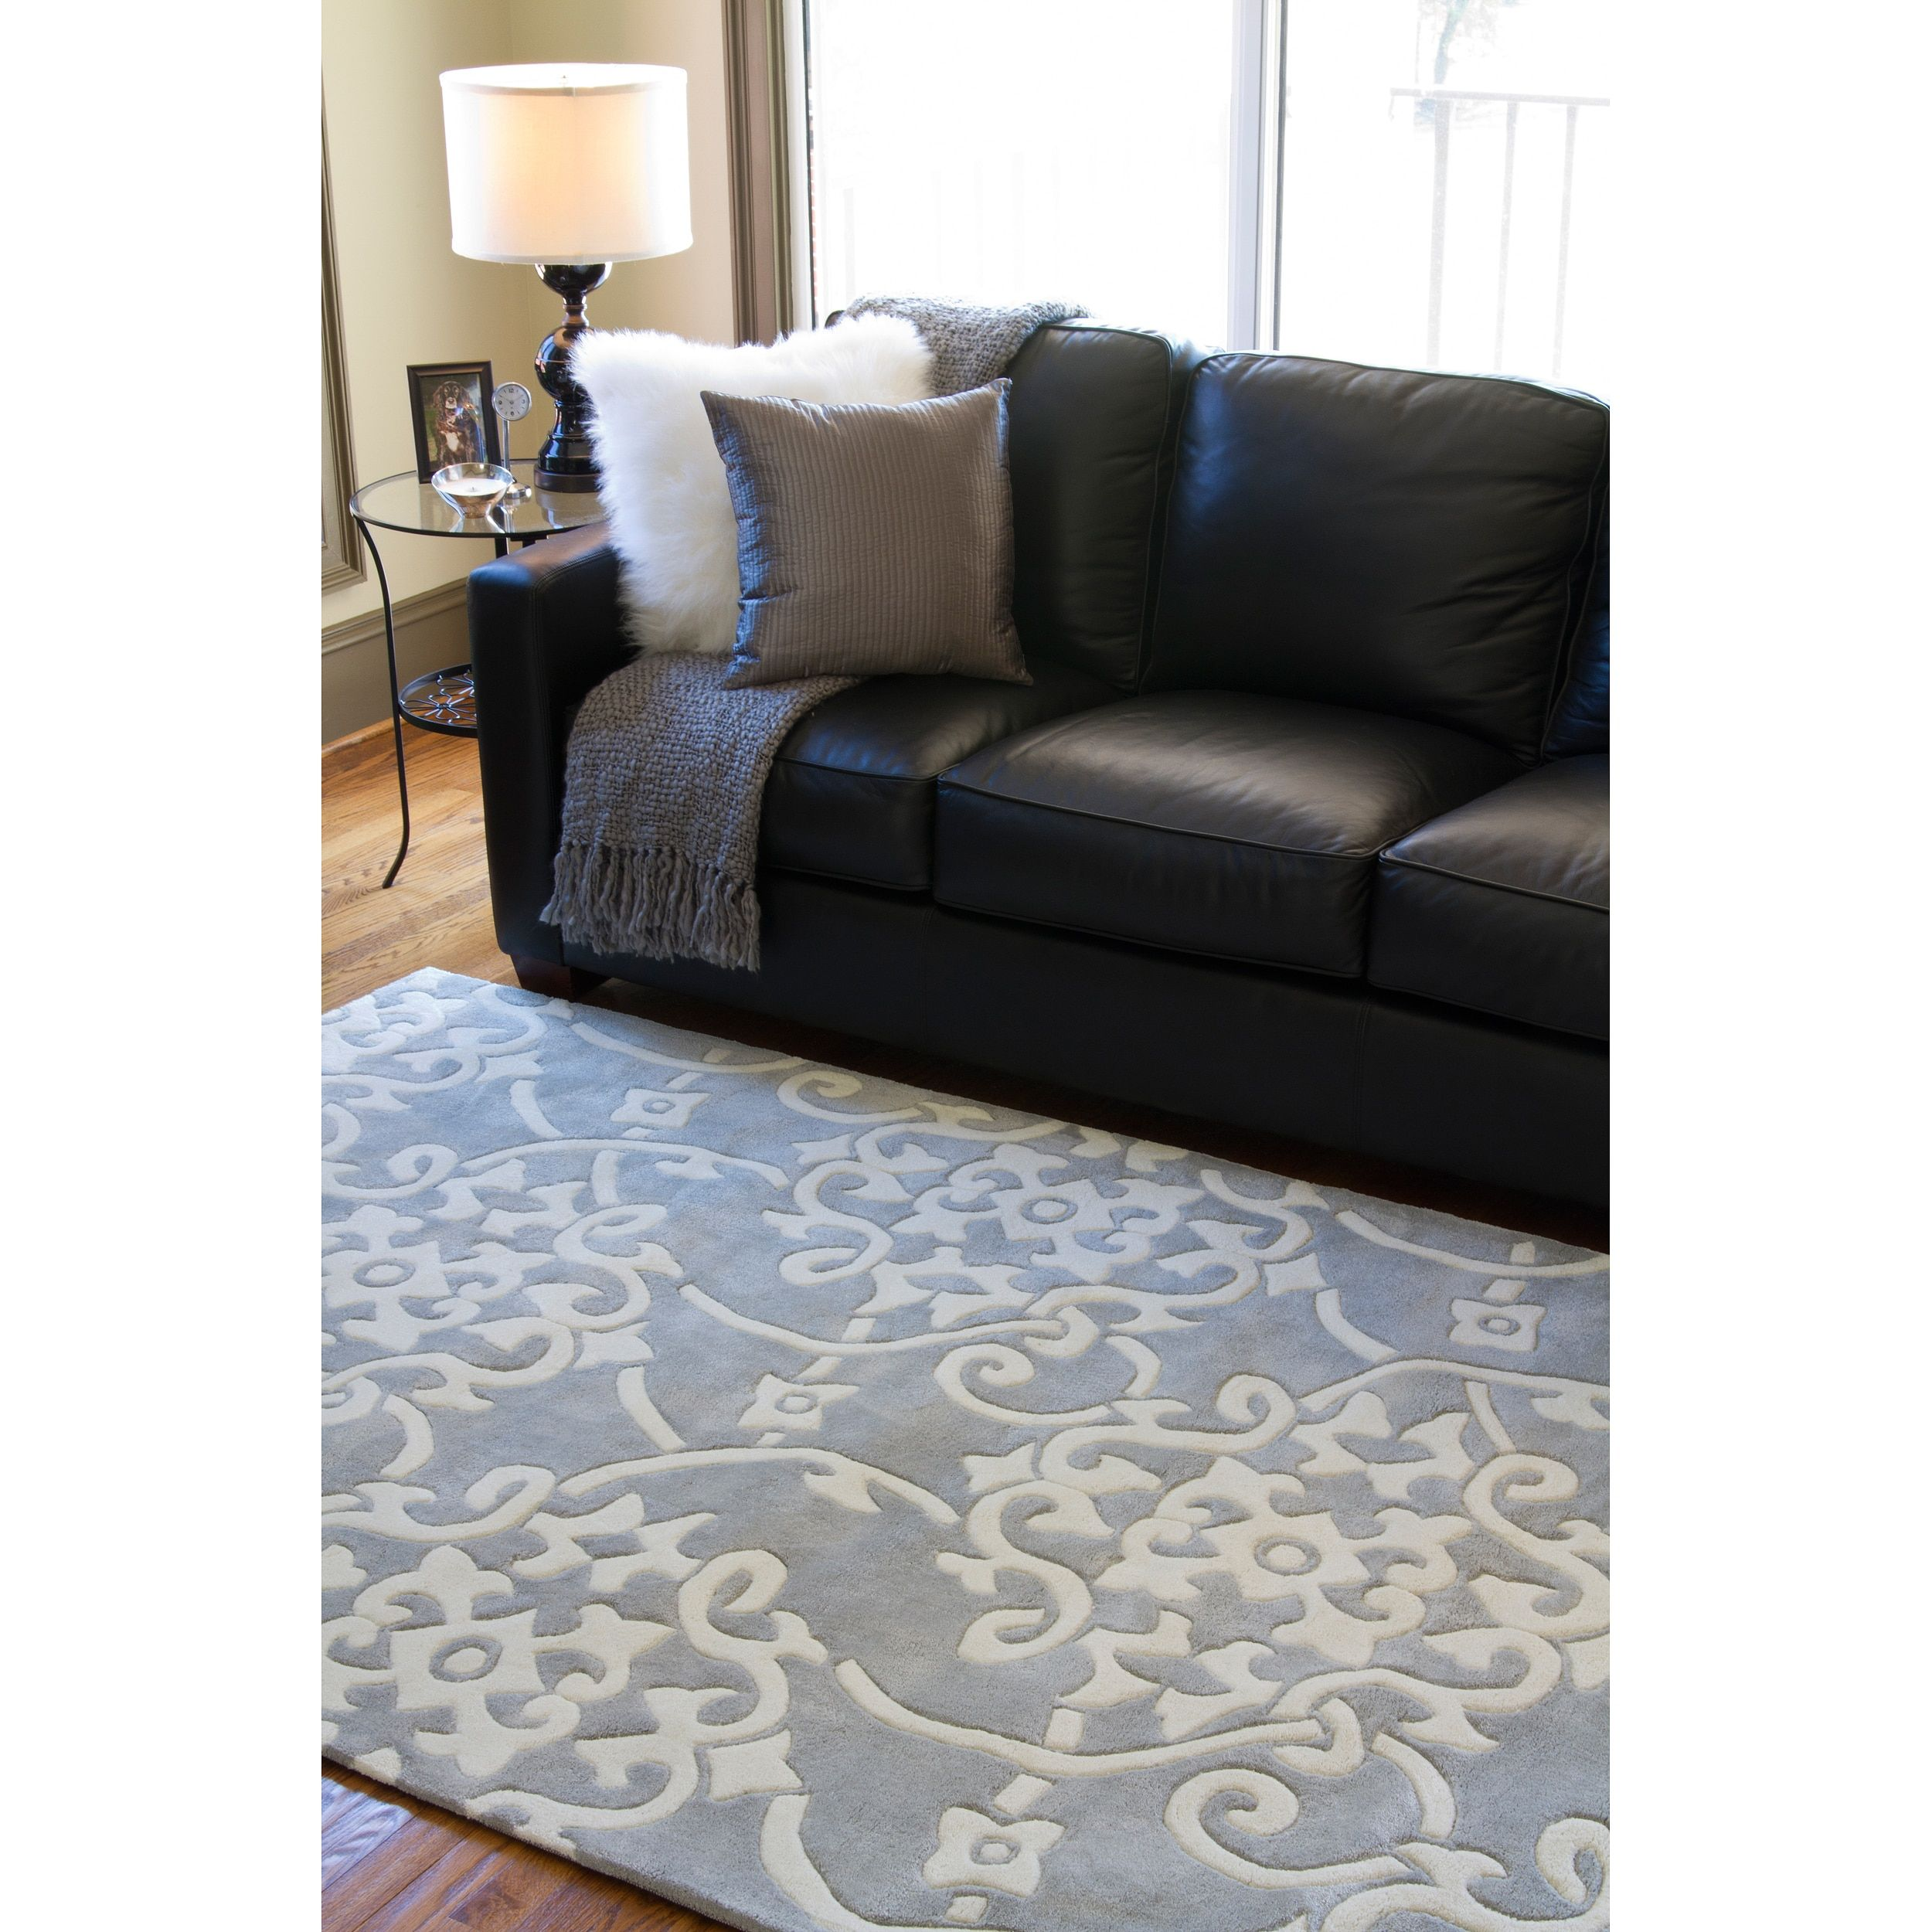 Online Shopping Bedding Furniture Electronics Jewelry Clothing More Floral Area Rugs Contemporary Area Rugs Transitional Area Rugs